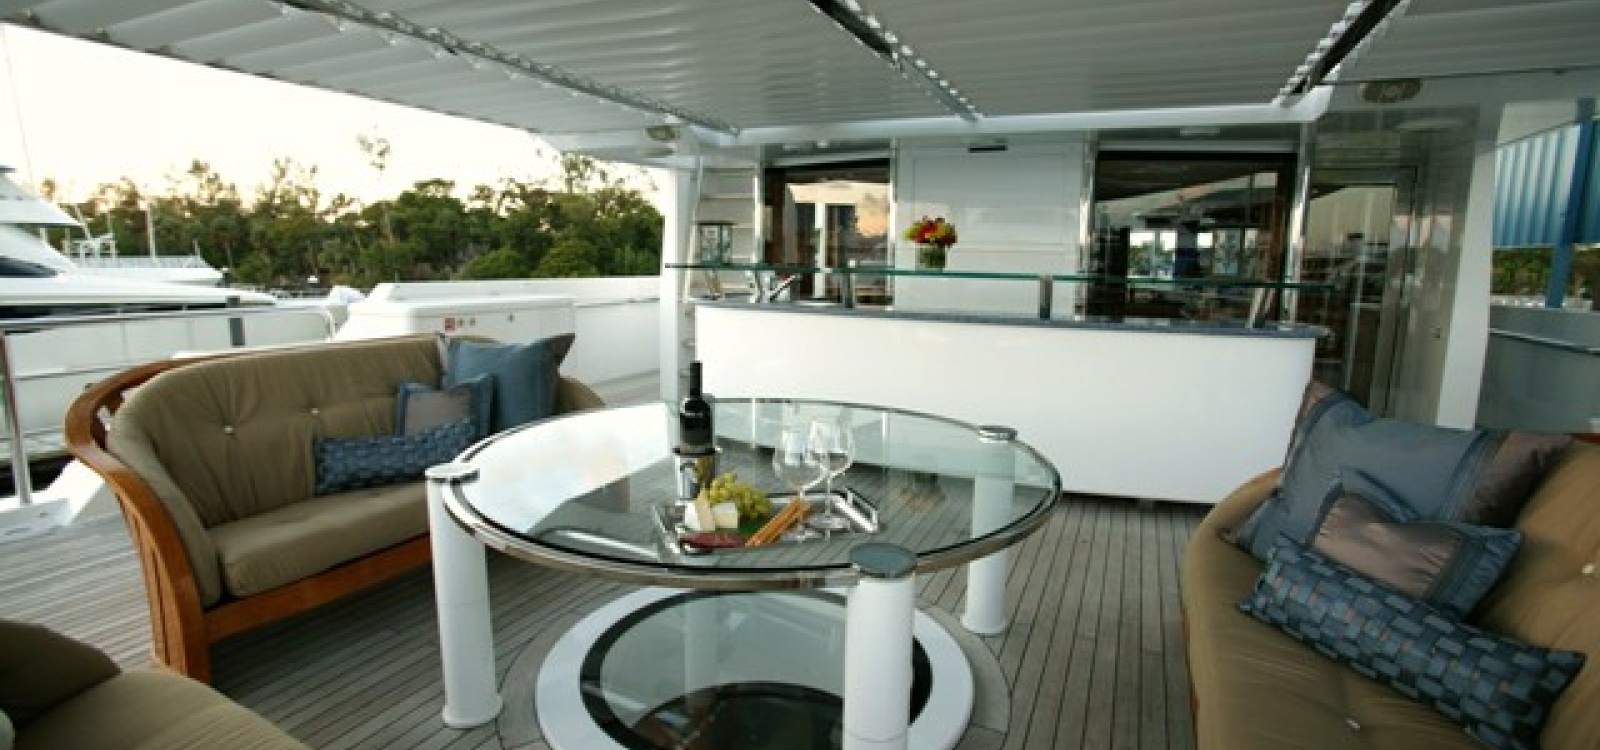 4 Rooms, Motor Yacht, For Charter, 6 Bathrooms, Listing ID 1068